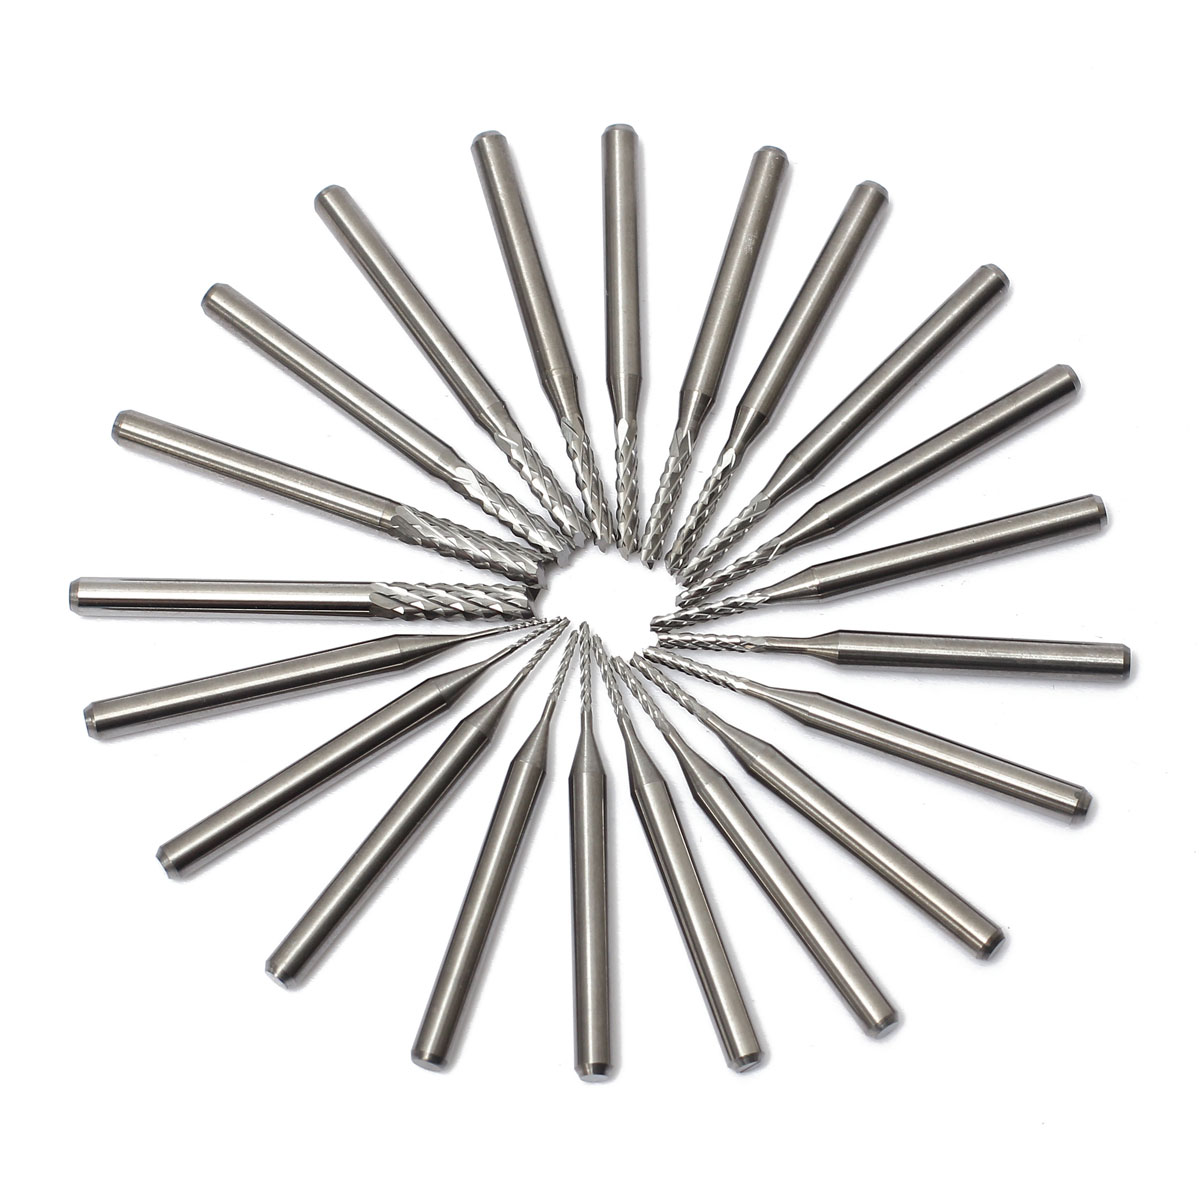 Blade Carbide End Mill Engraving Bits For CNC PCB Rotary